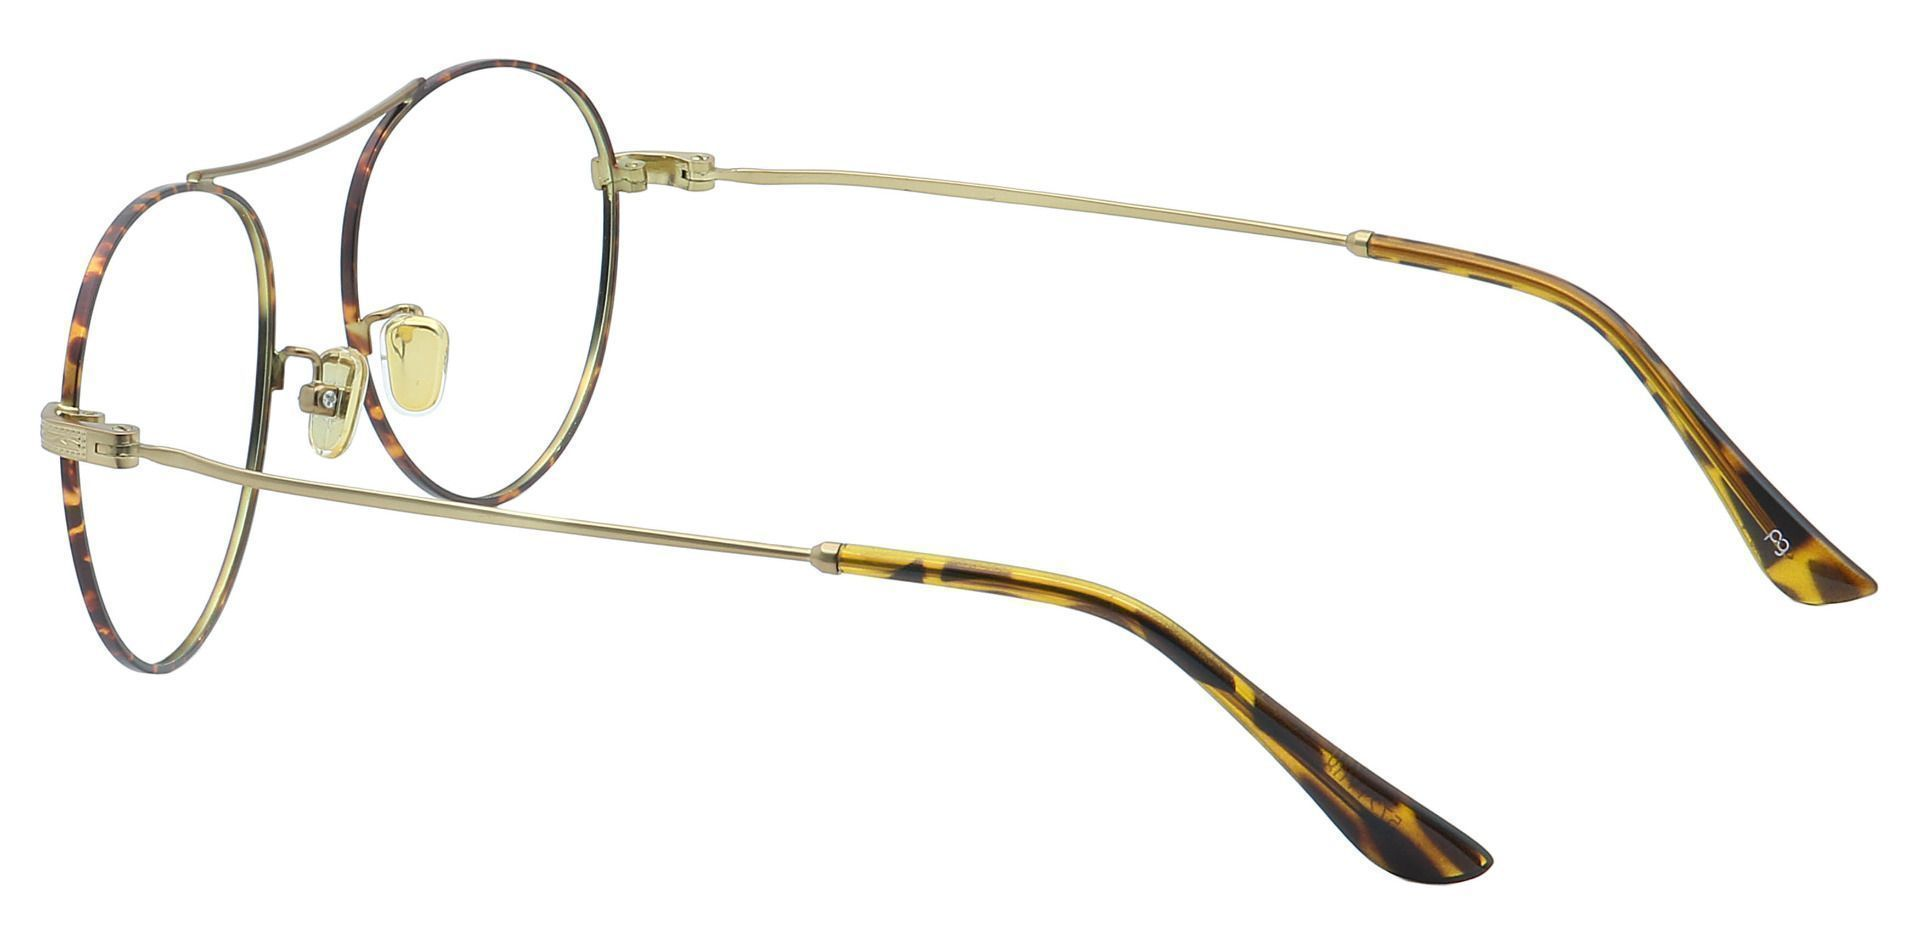 Finn Round Prescription Glasses - Yellow